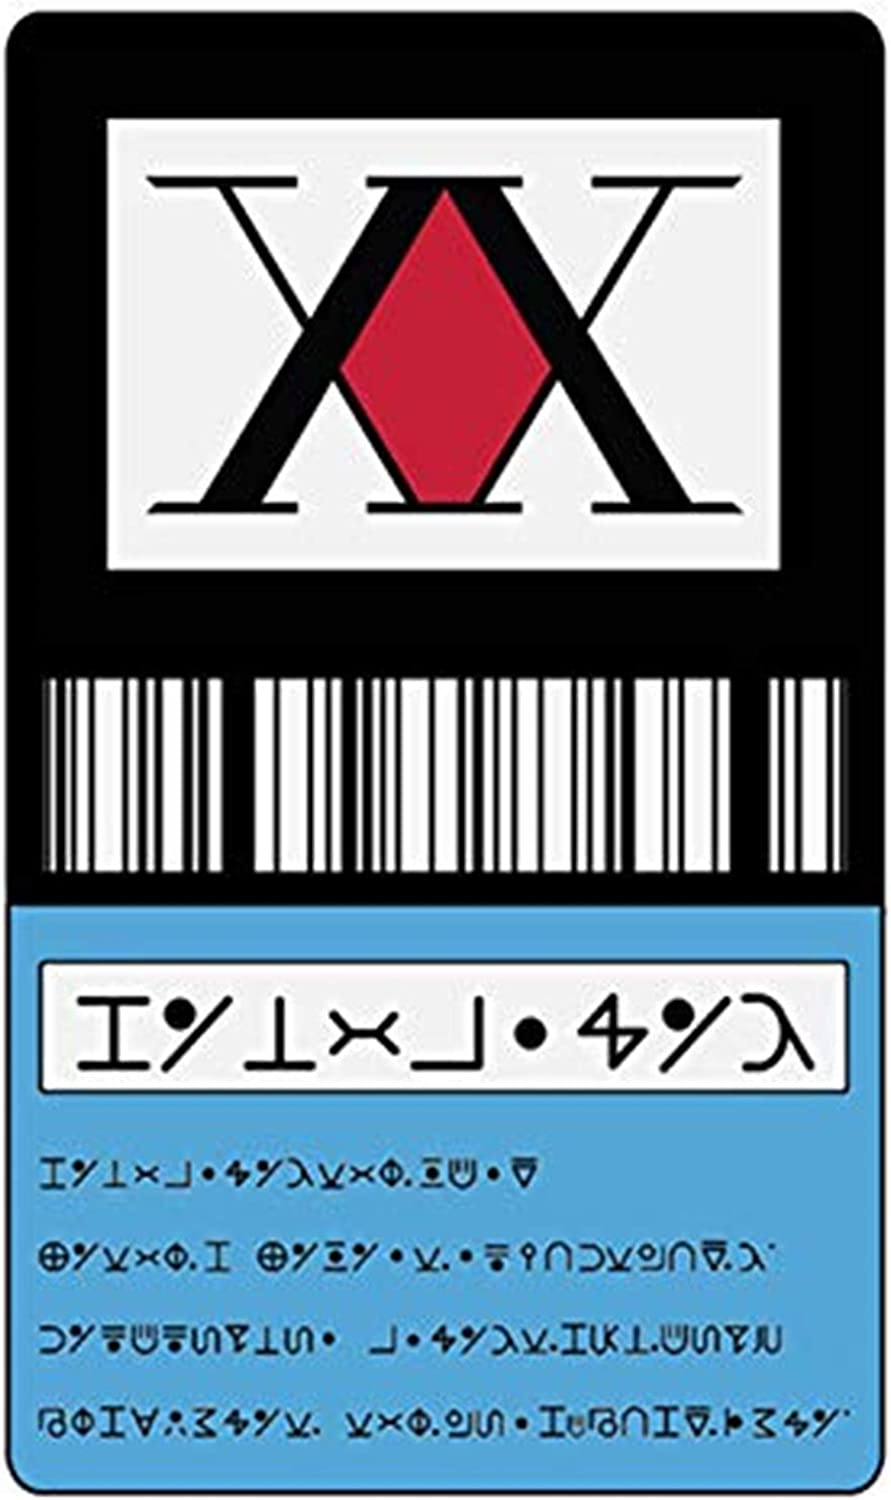 Amazon Com Japan Anime Hunter X Hunter License Card Sticker Gon Freecss Killua Zoldyck Kurapika Badge Bus Bank Credit Card Stickers New Blue Clothing